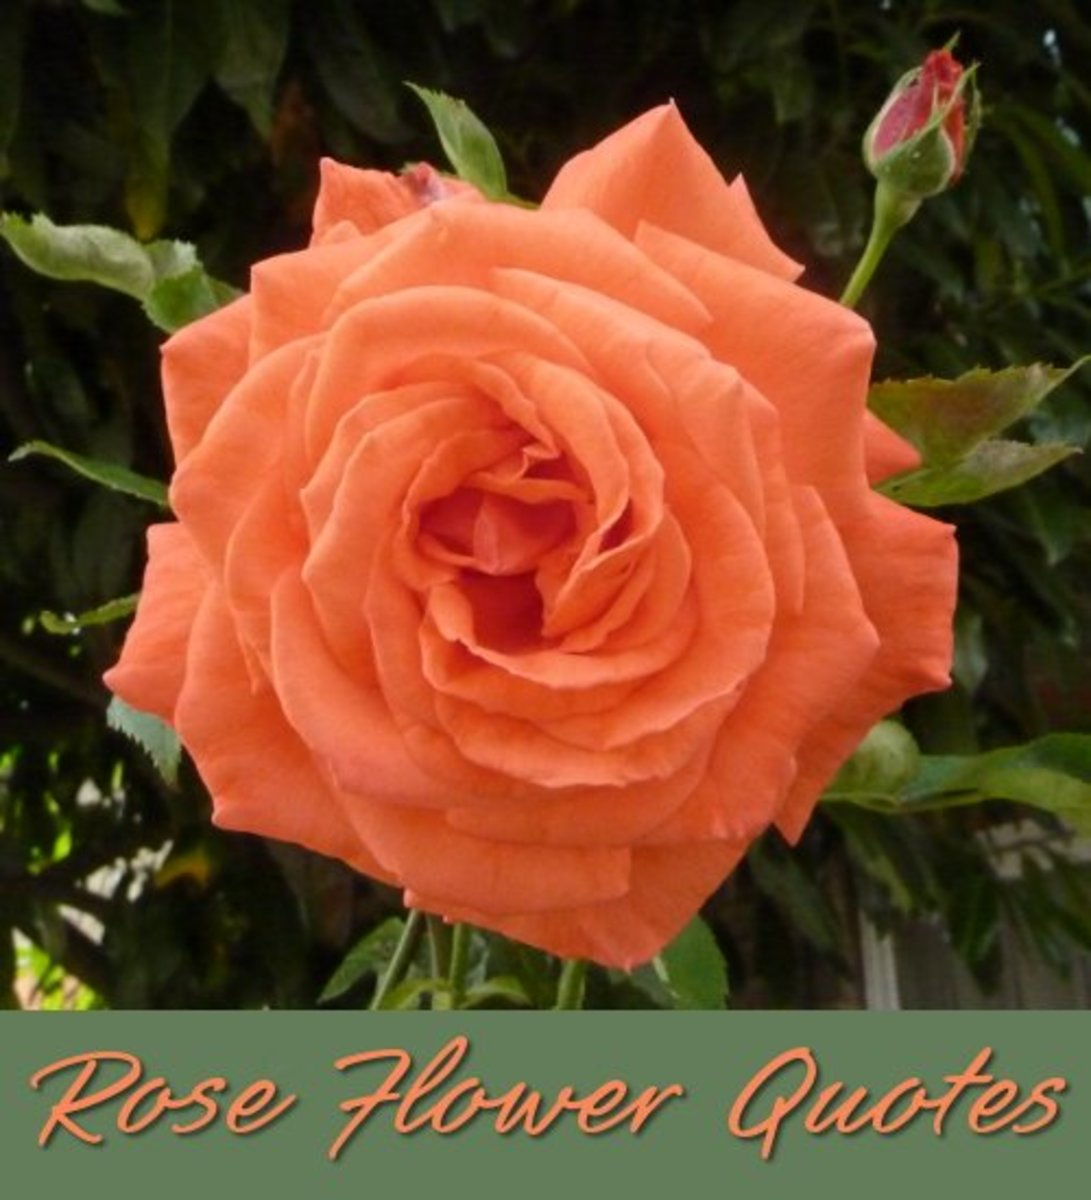 Beautiful Rose Flower Quotes